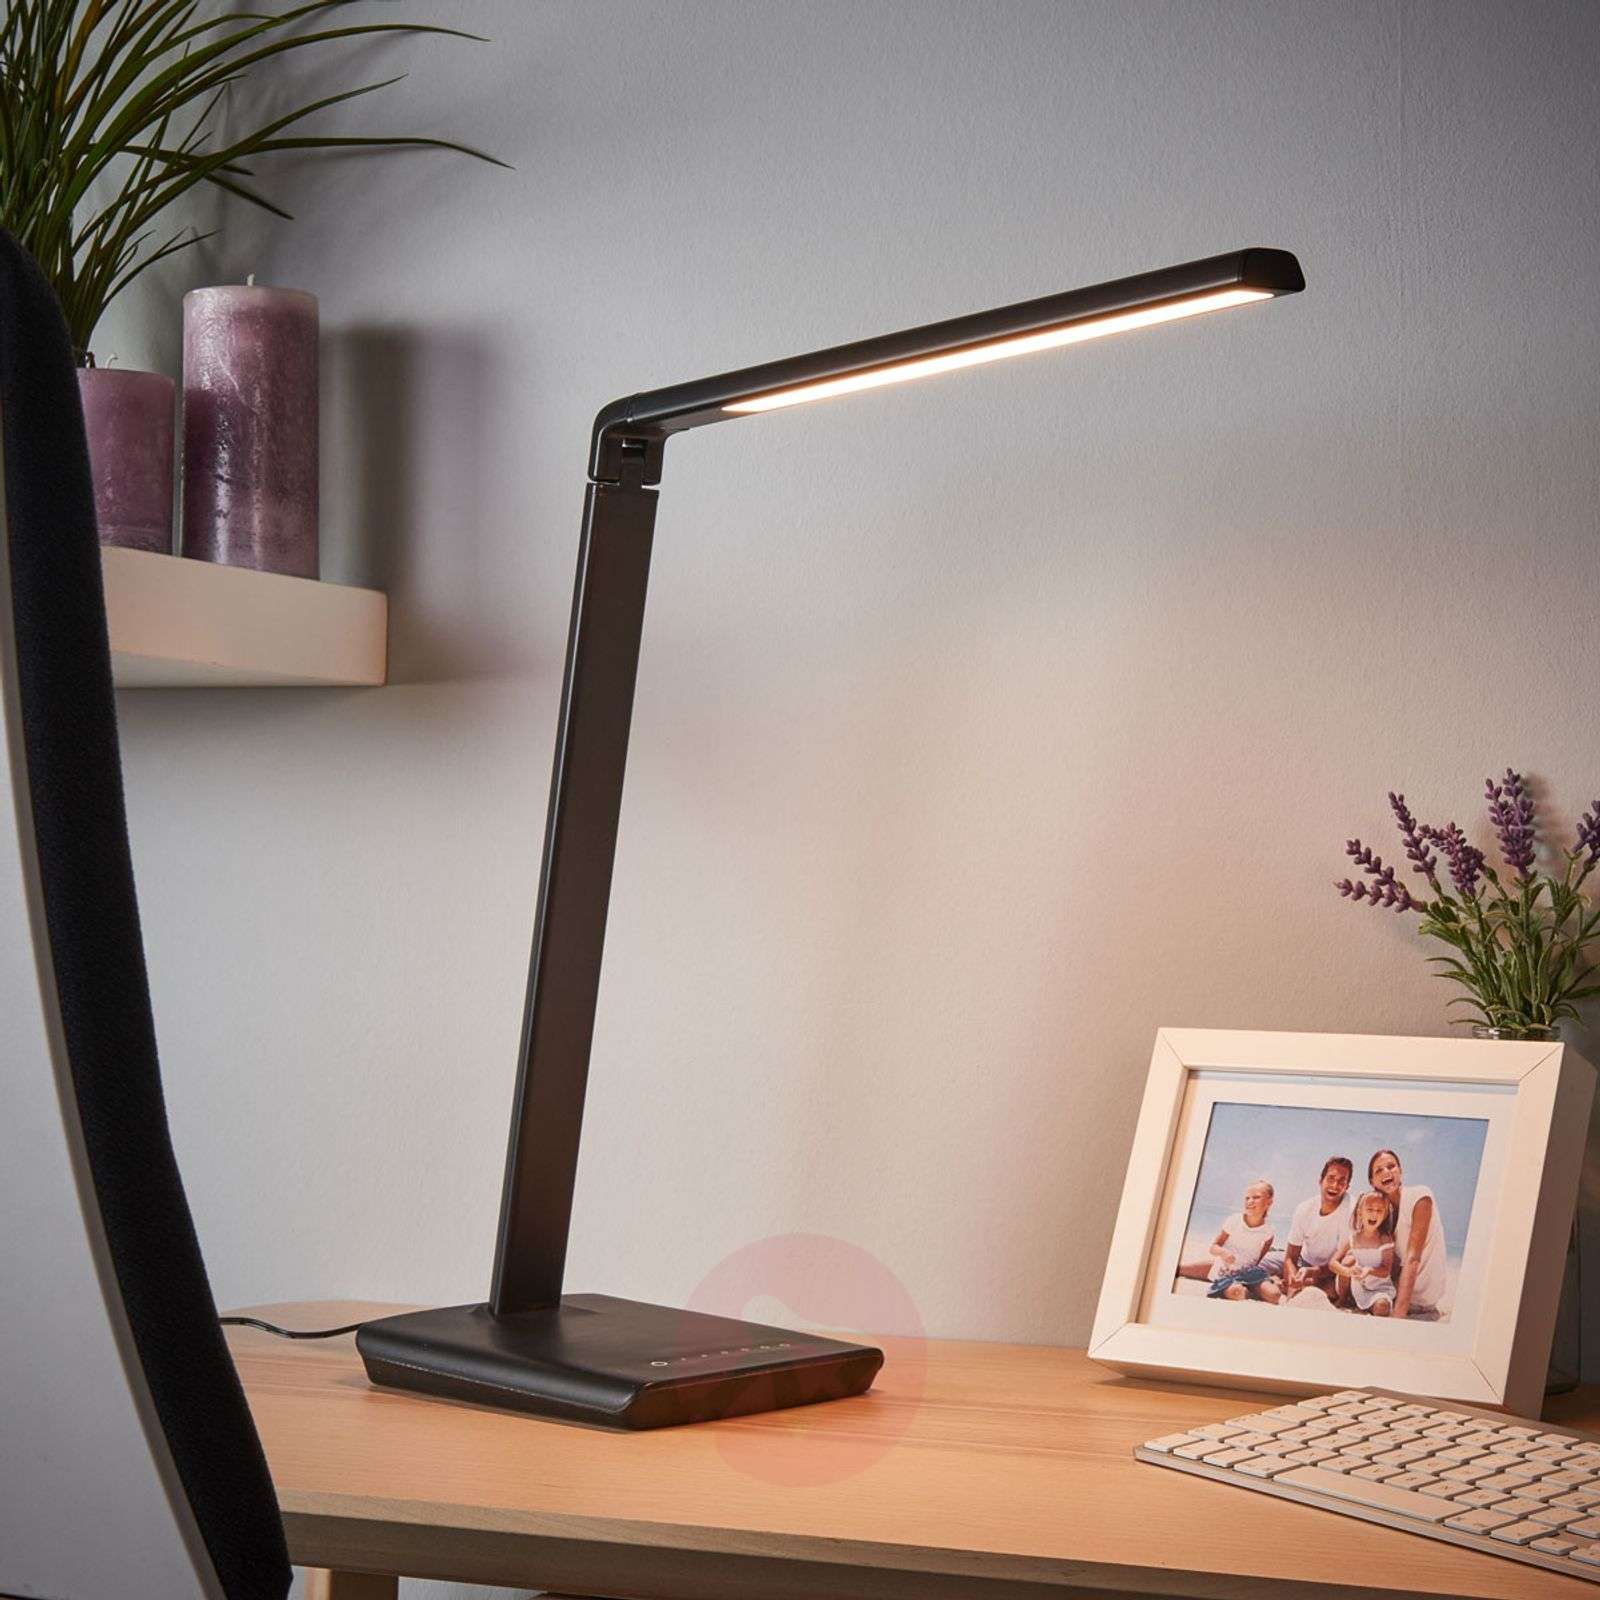 Kuno - LED desk lamp with USB port_9643035_1